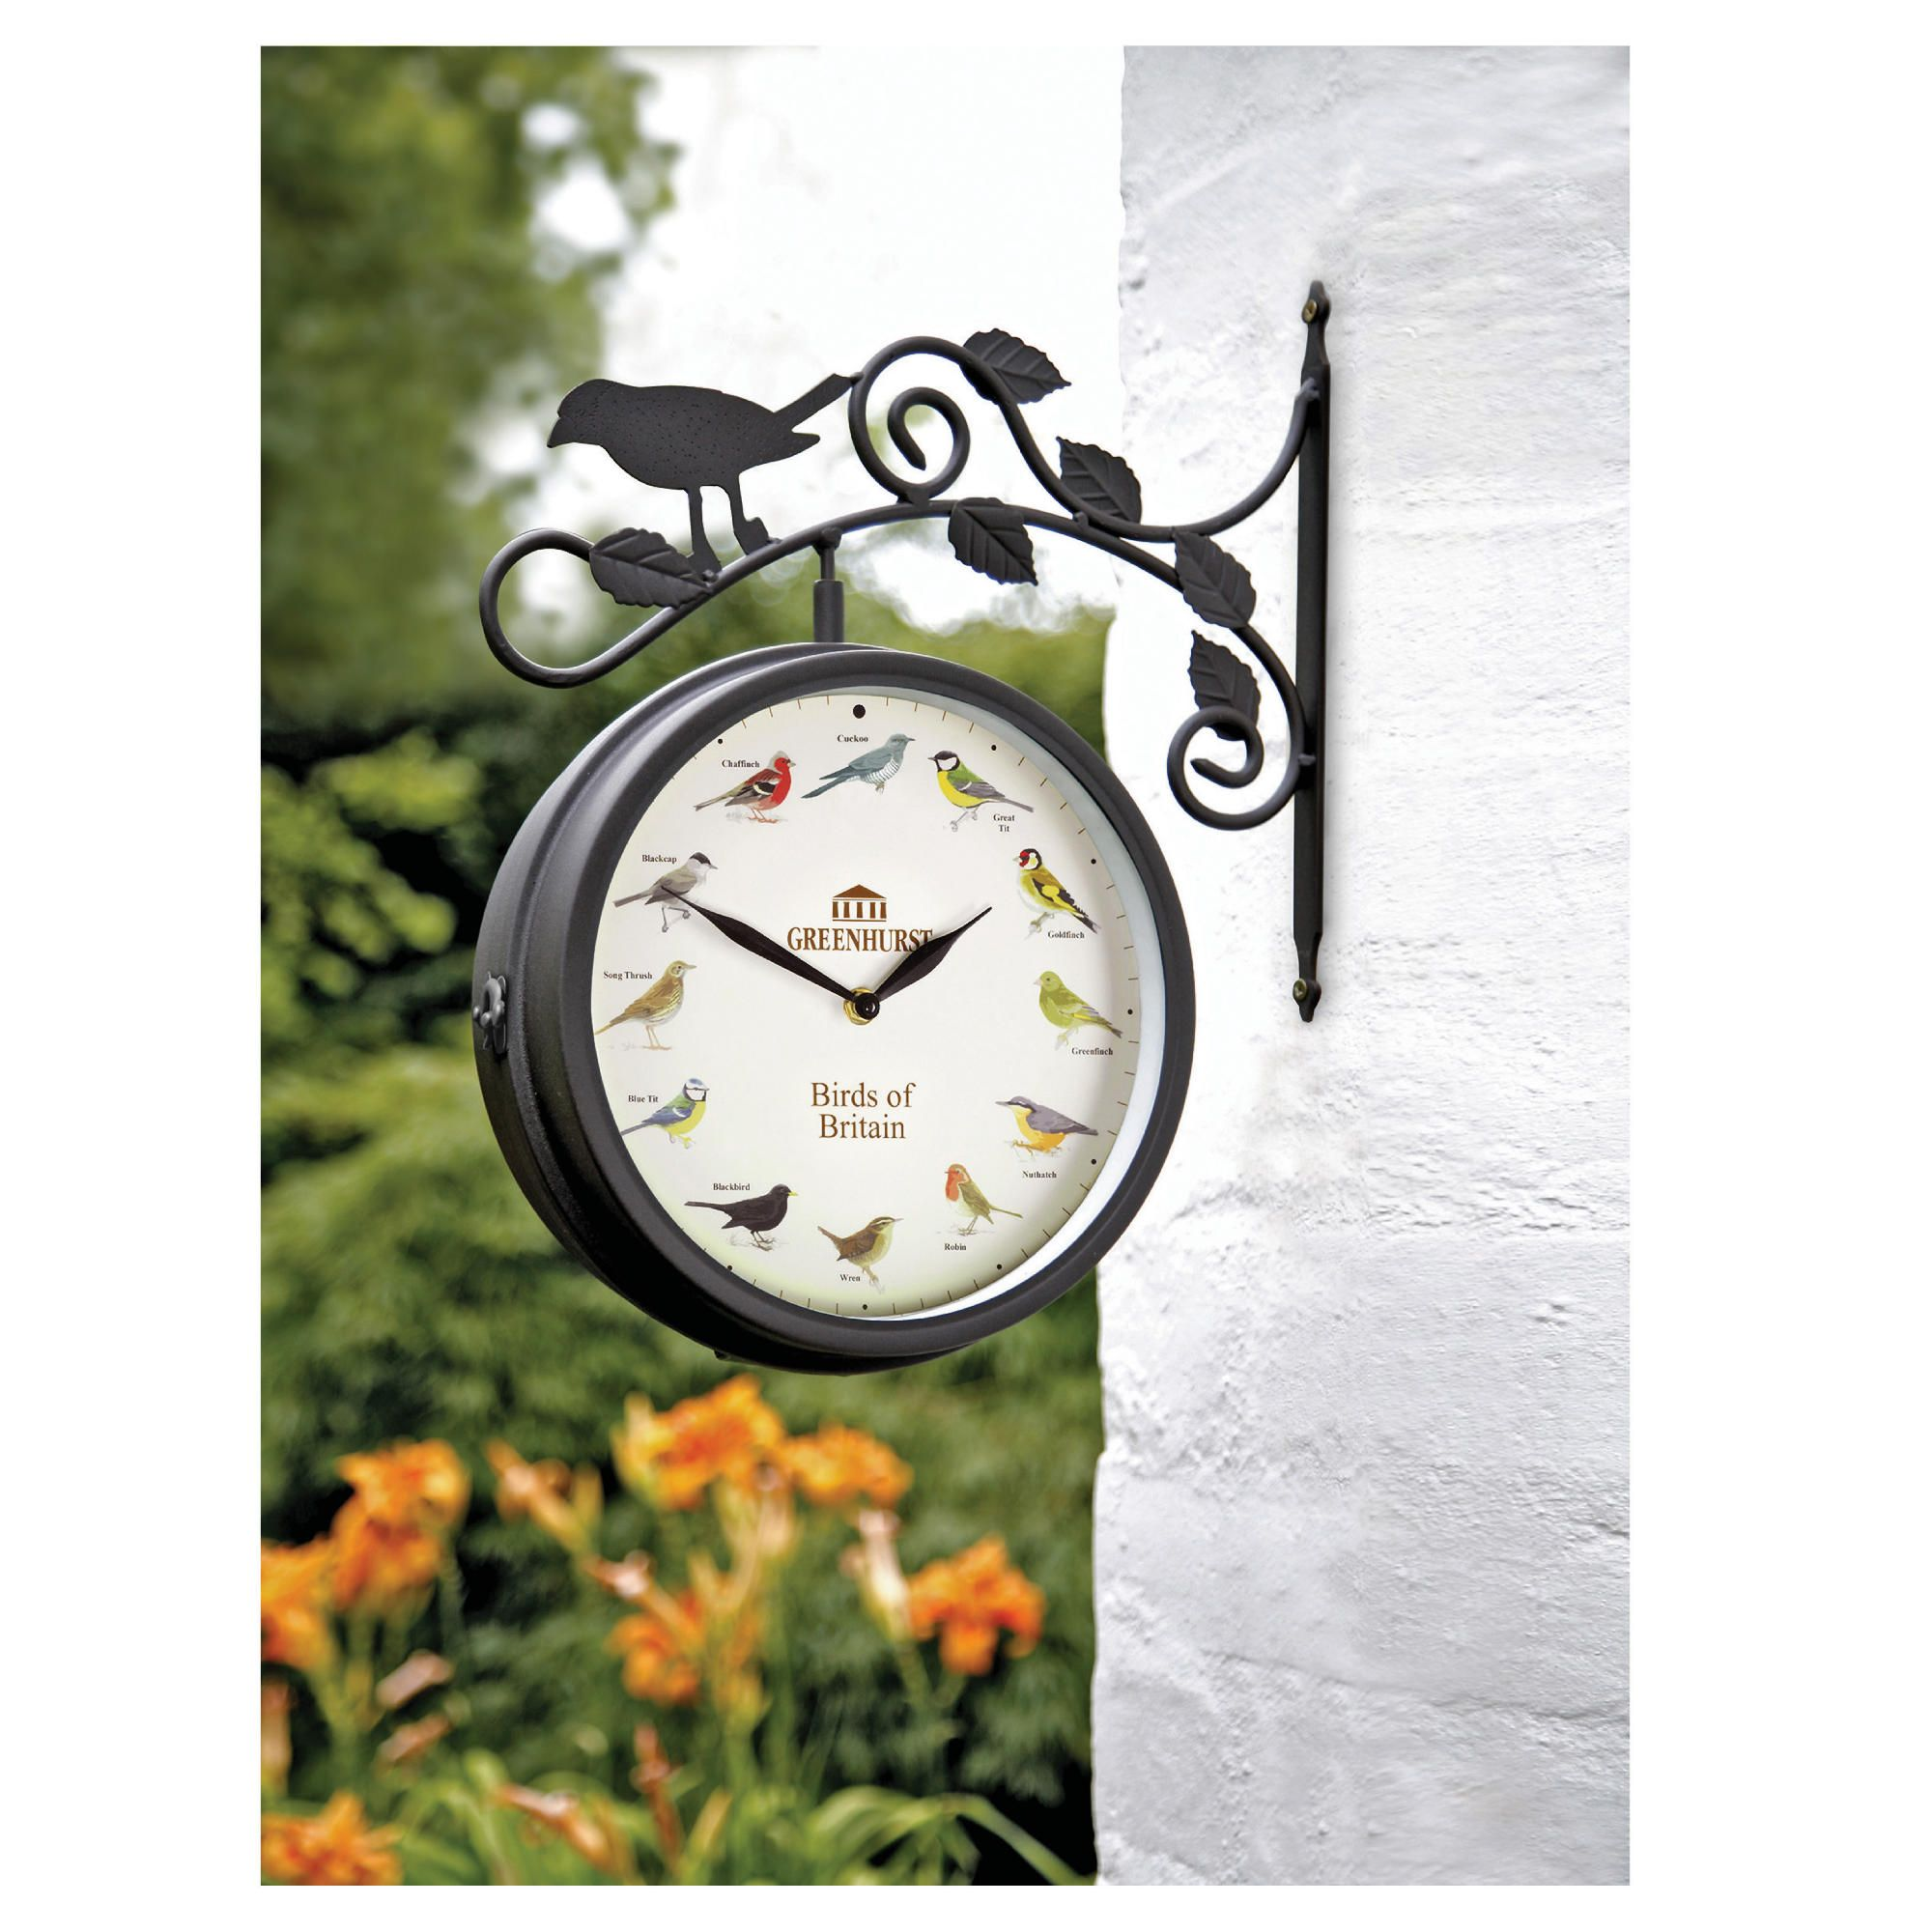 Gamblemere Birds of Britain Garden Clock/Thermometer at Tesco Direct